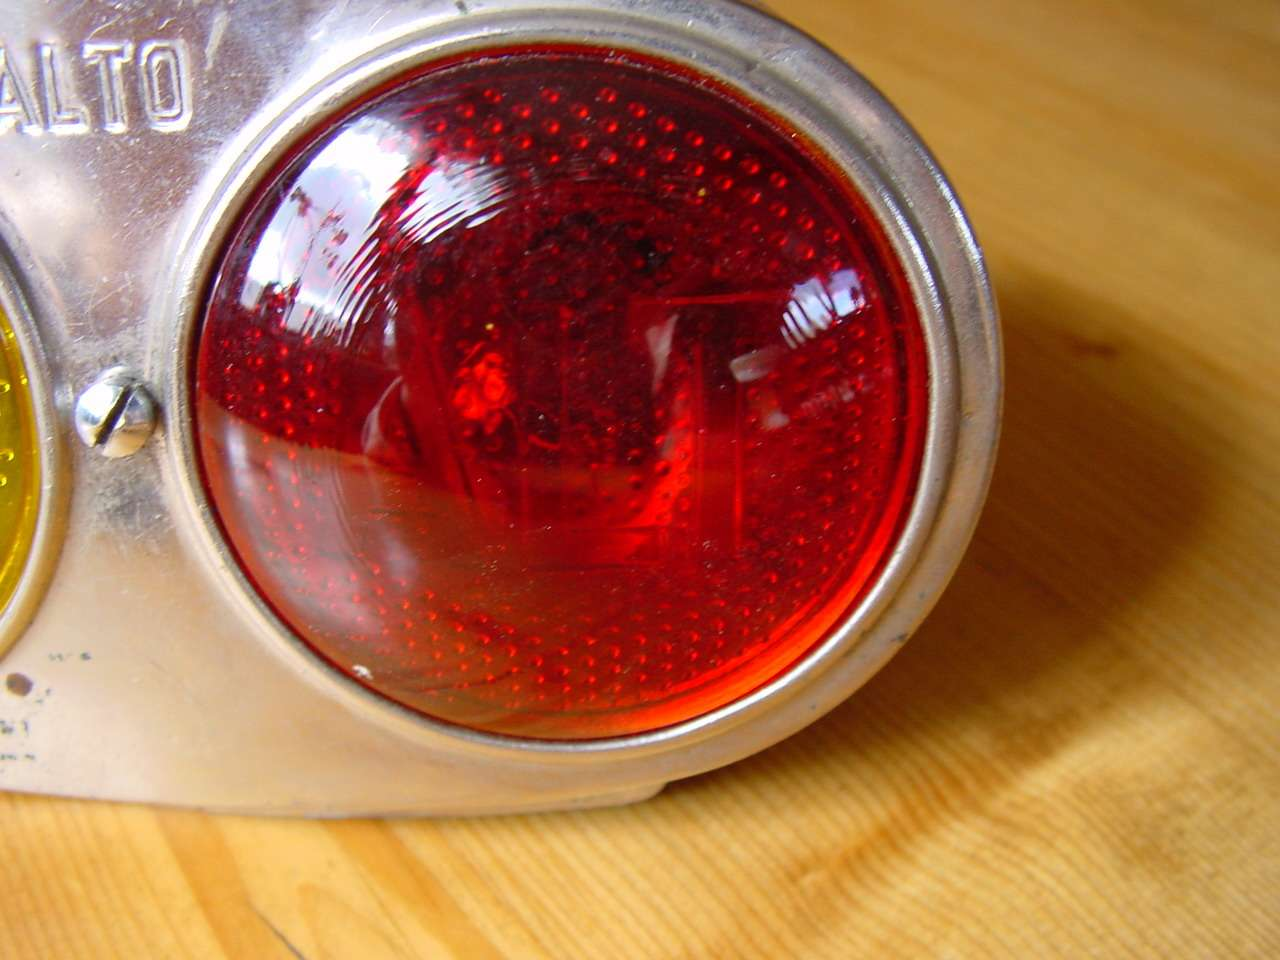 Carello taillight with alt in glass lens